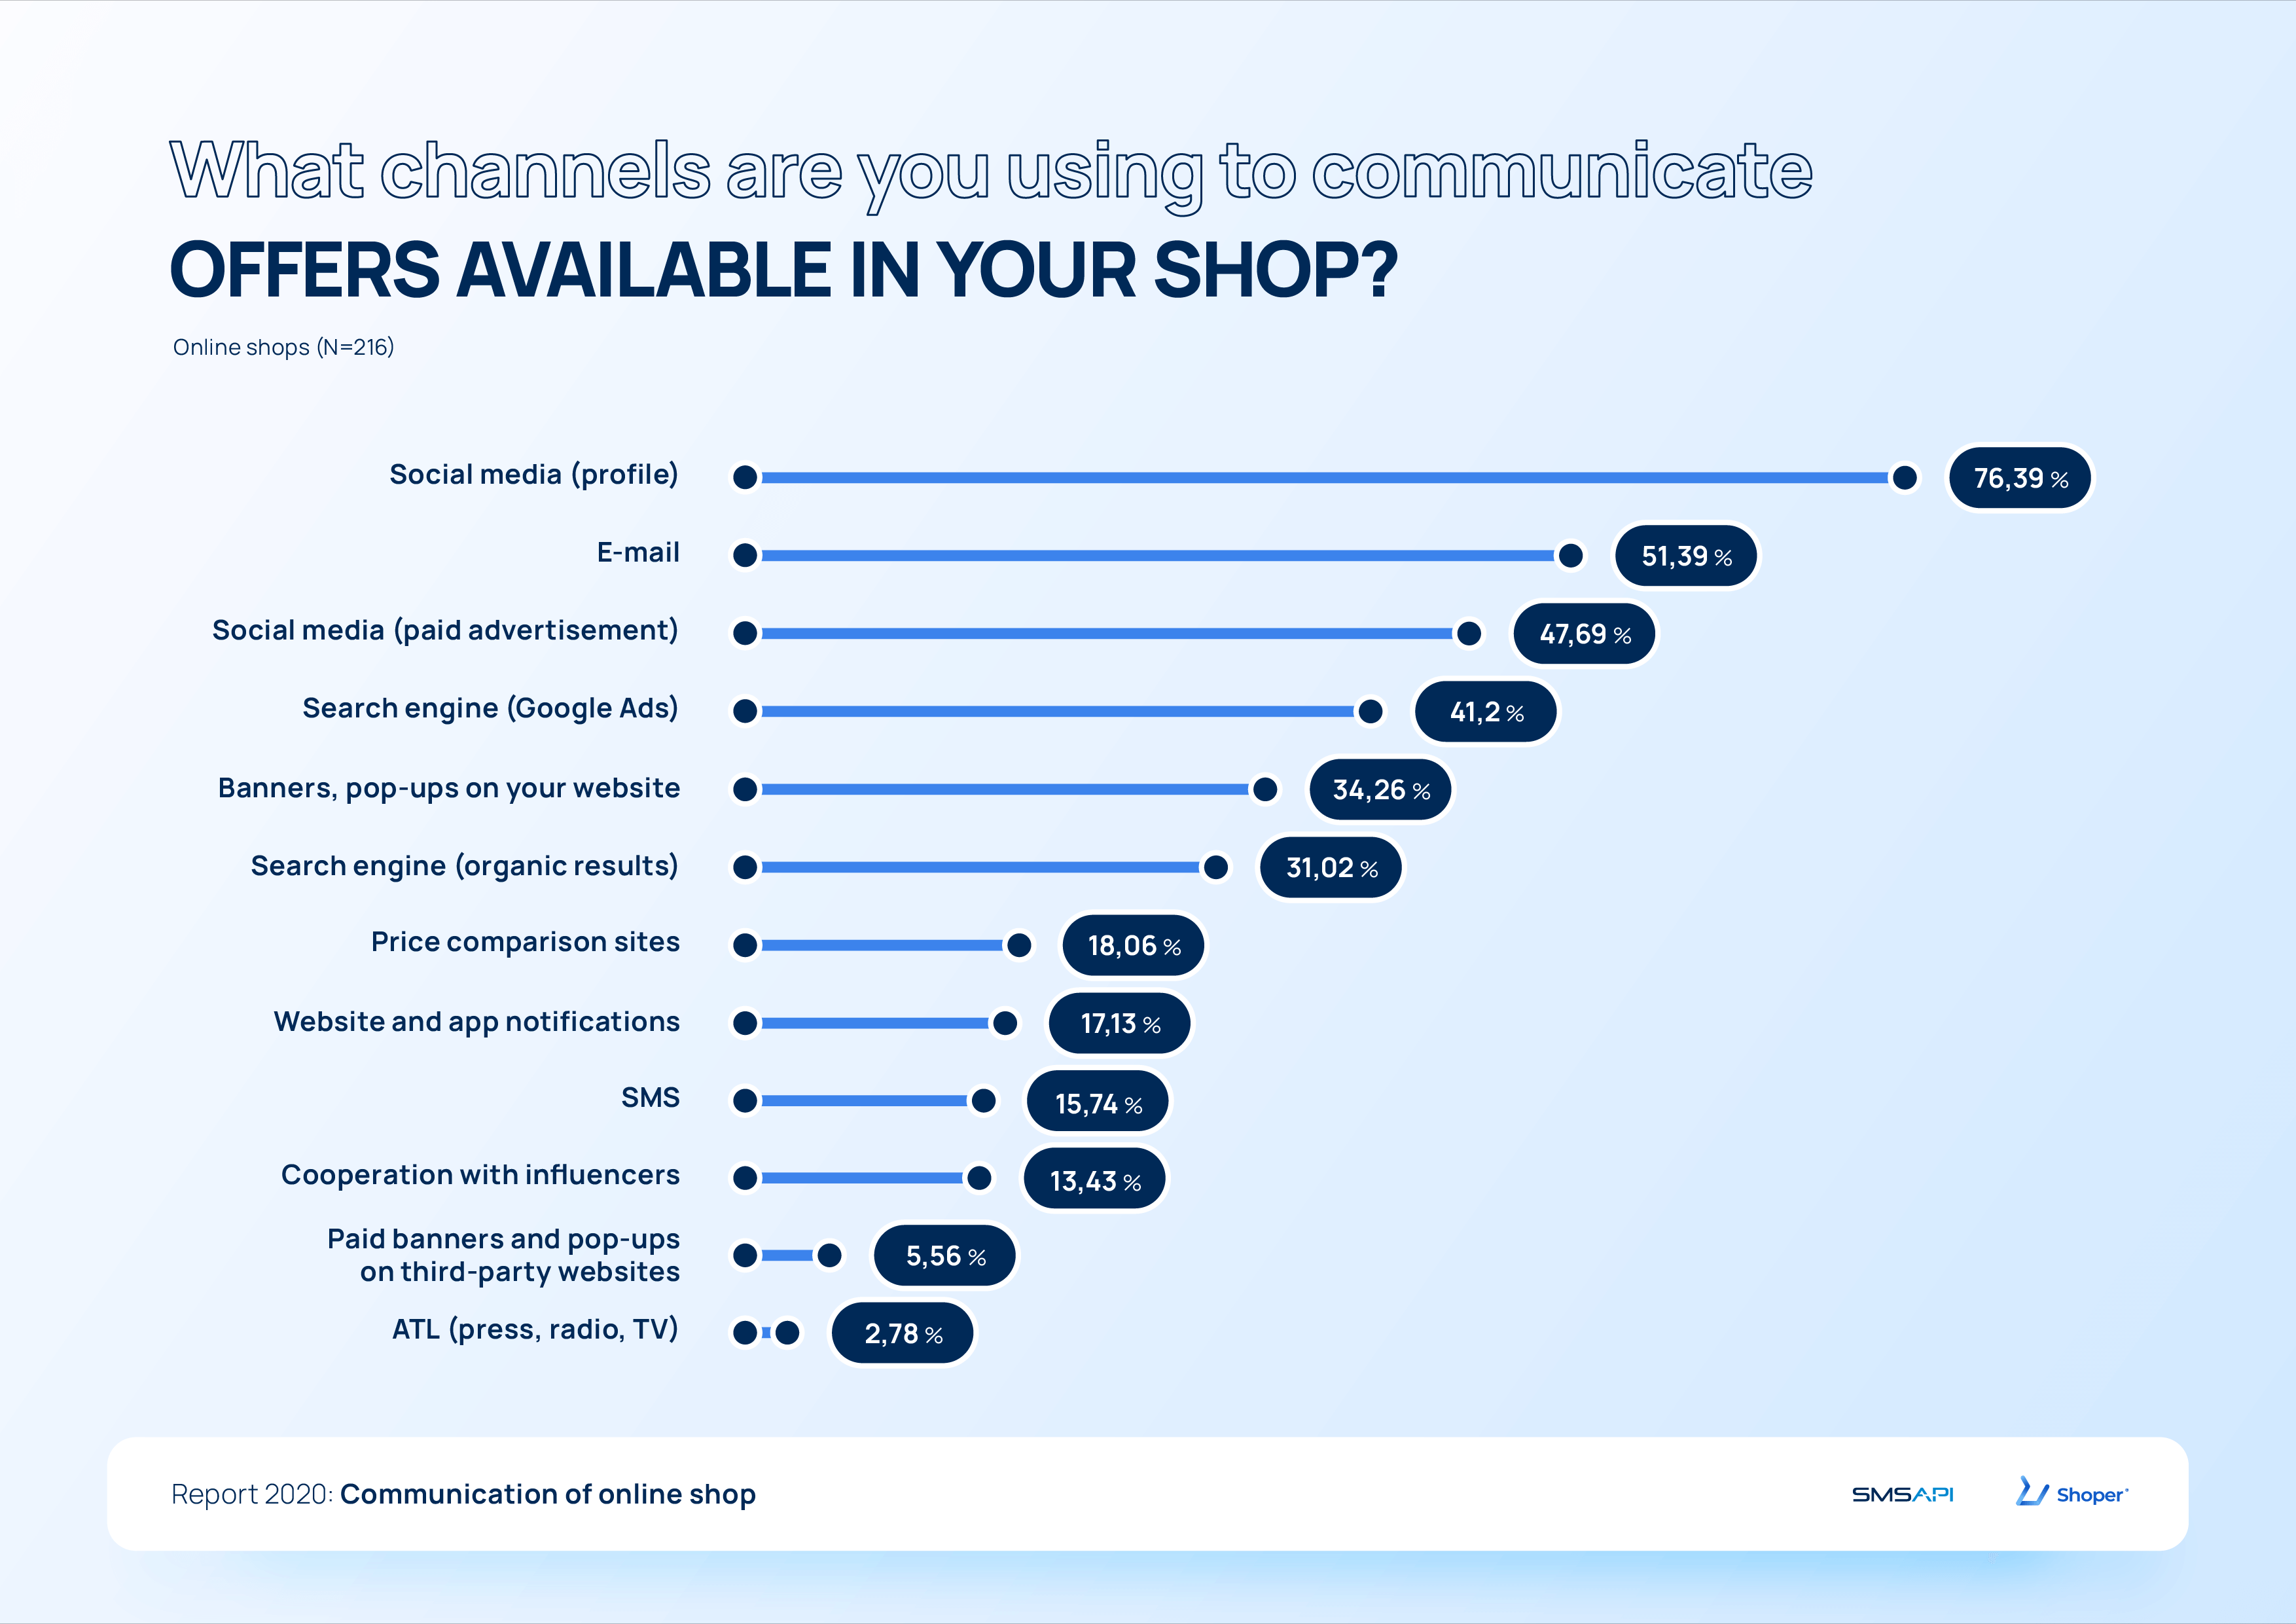 What channel are you using to communicate offer available in your shop? 2020 e-commerce report